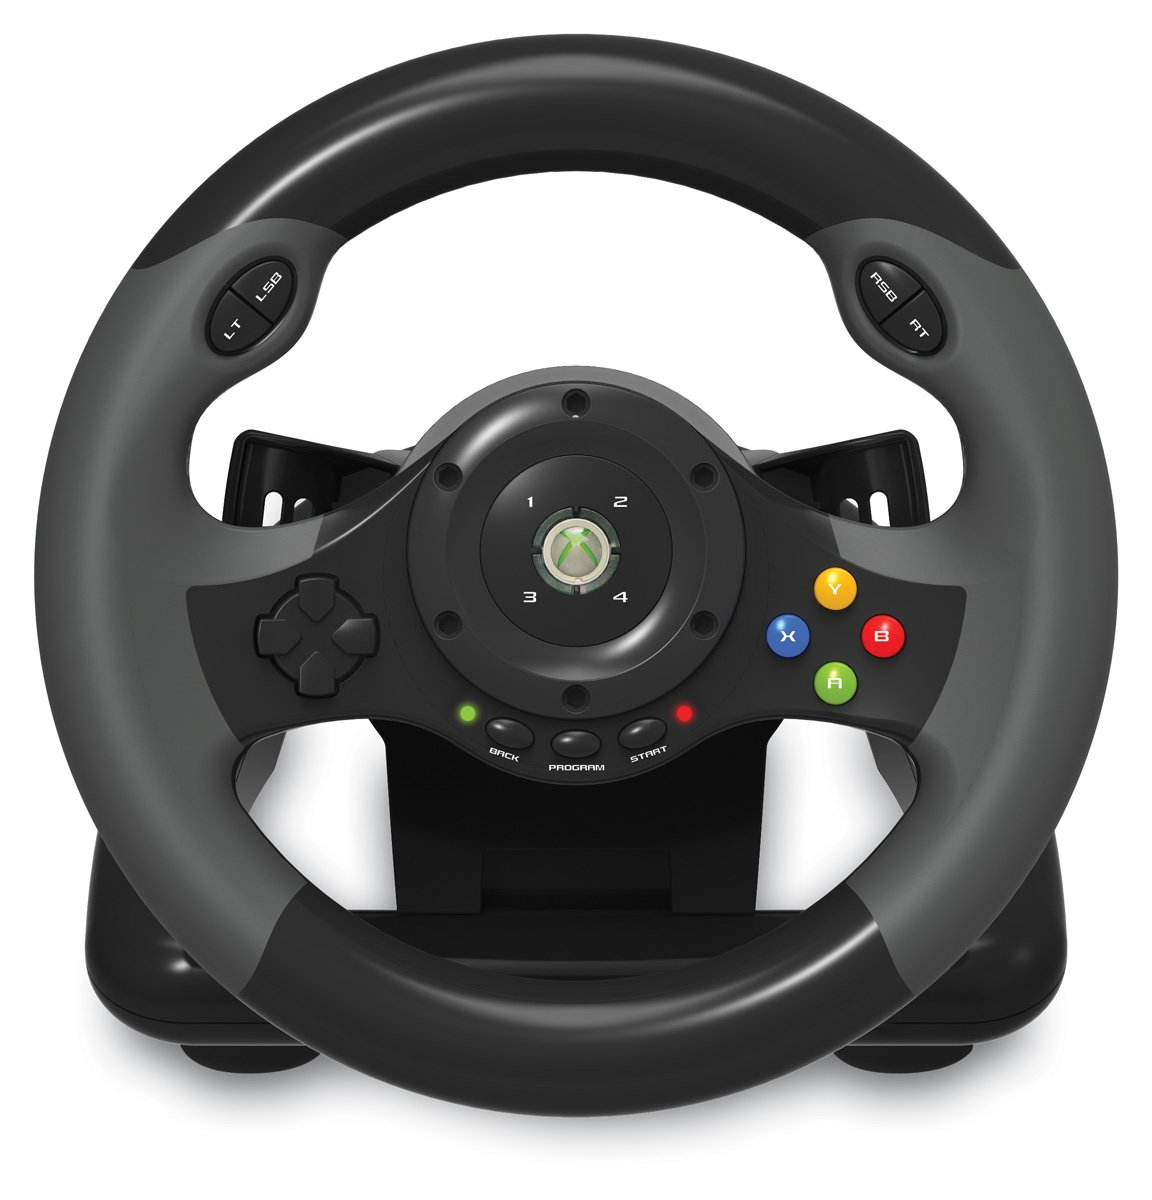 Top 10 Best Xbox One Steering Wheels For Forza 6 For 2016 2017